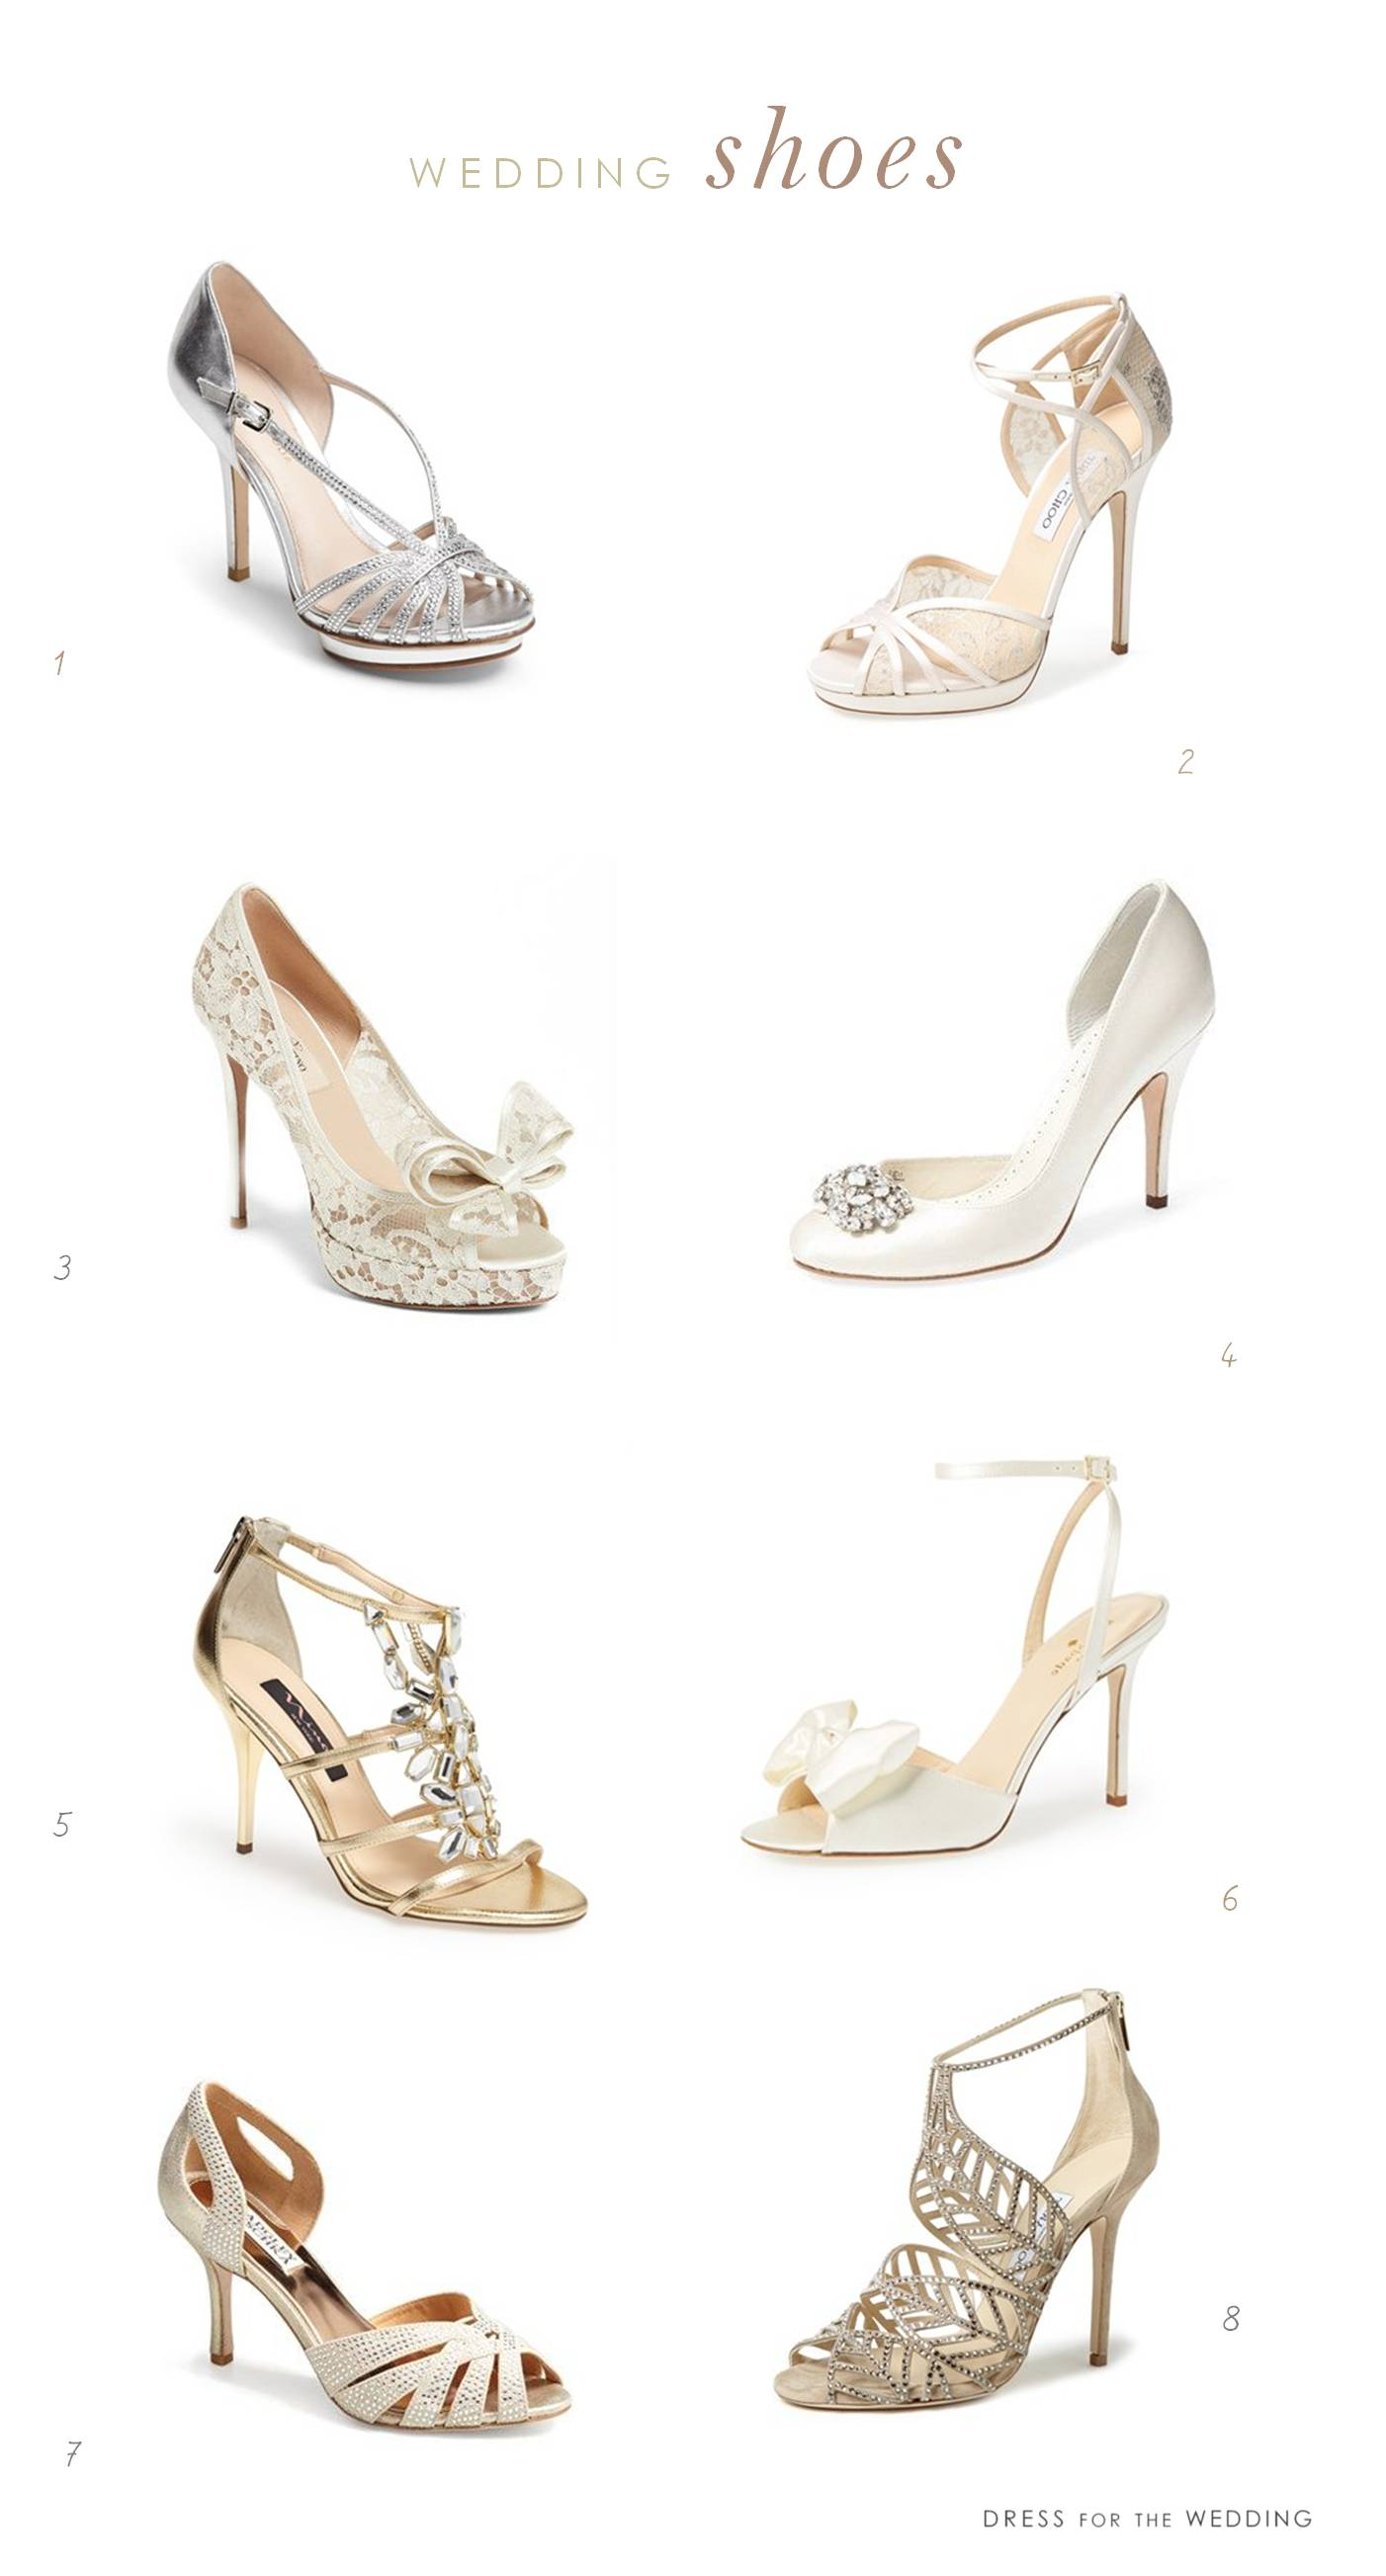 Of the best wedding shoes for brides